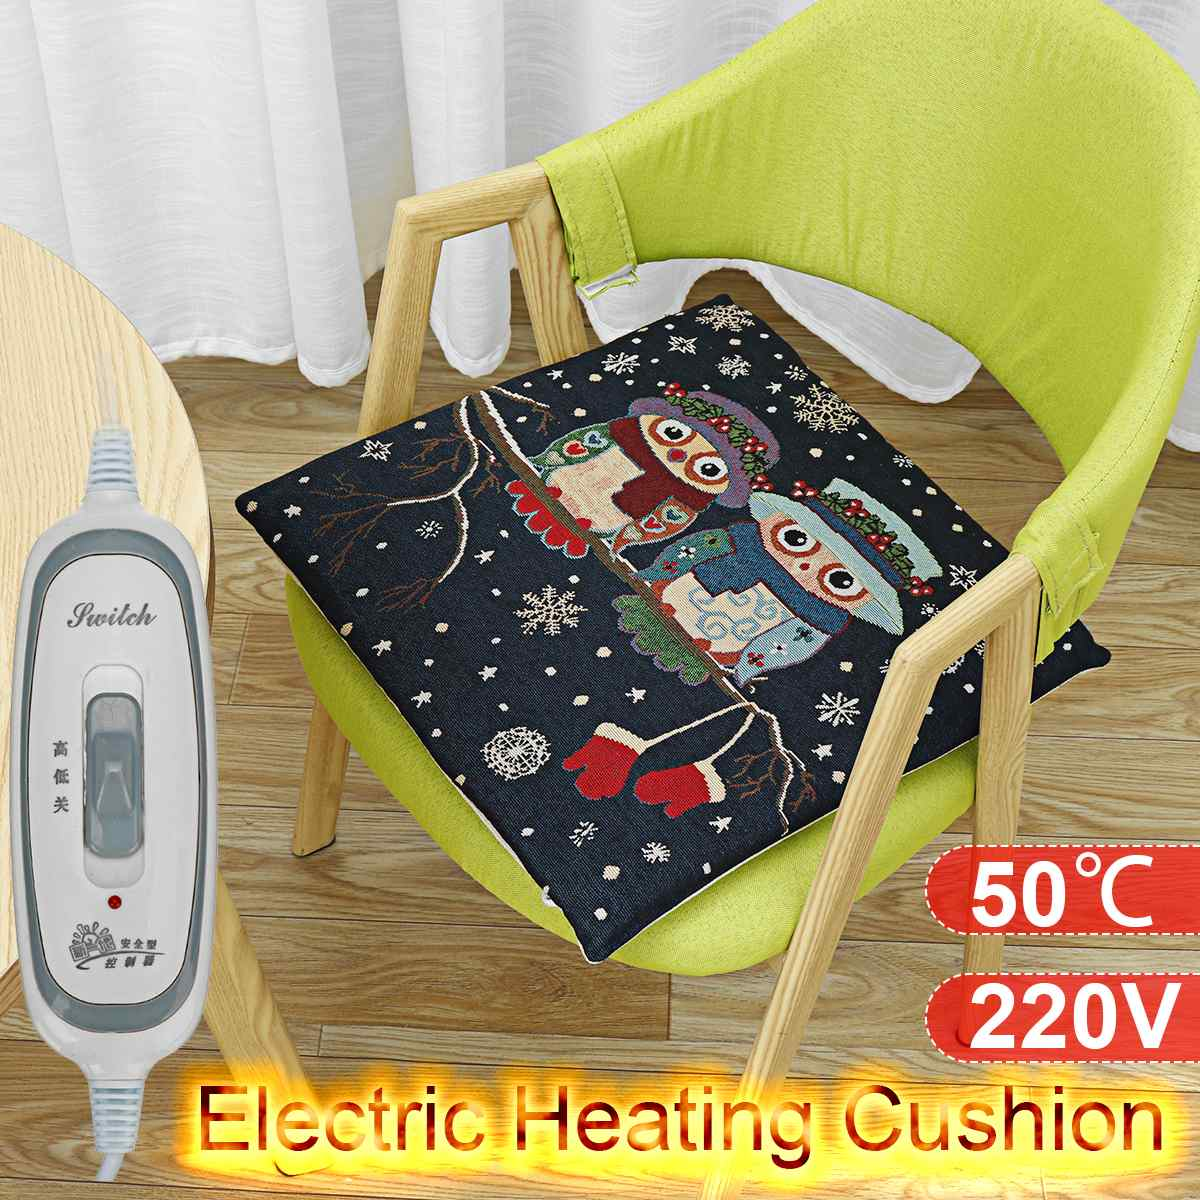 Cushion Seat Removable And Washable Electric Cushion Office Cushion Small Electric Blanket Warming Electric Heating Mat